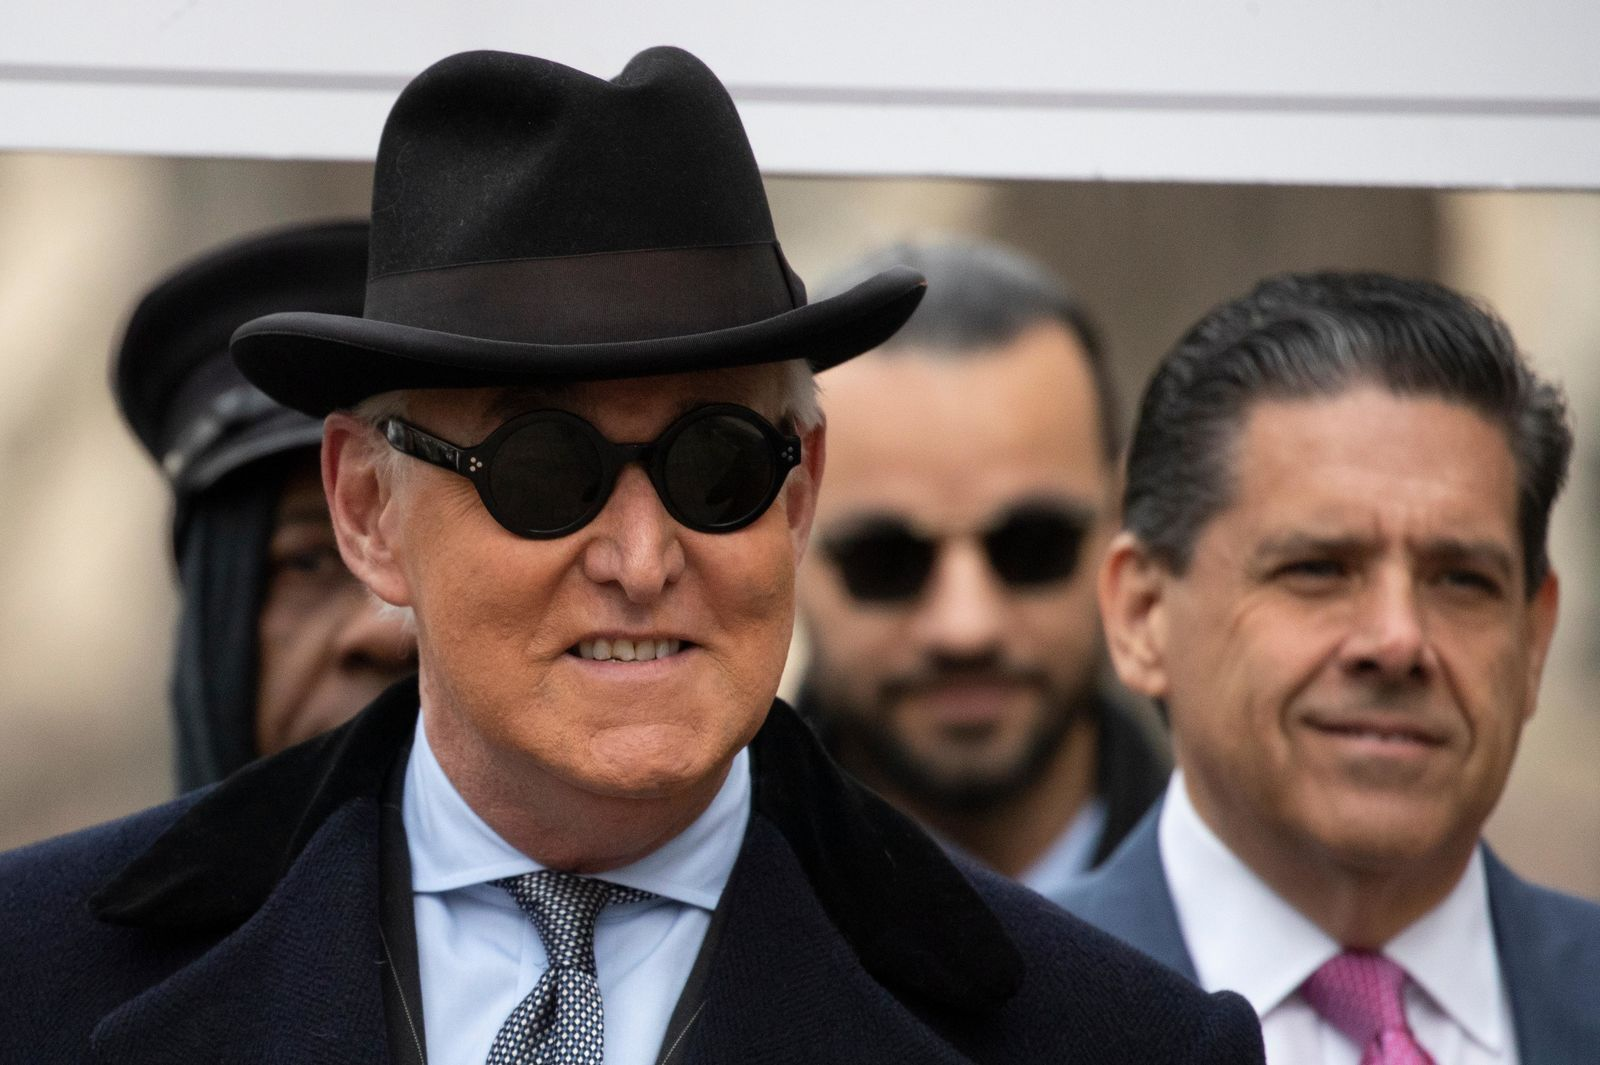 Roger Stone arrives for his sentencing at federal court in Washington, Thursday, Feb. 20, 2020. Roger Stone, a staunch ally of President Donald Trump, faces sentencing on his convictions for witness tampering and lying to Congress. (AP Photo/Manuel Balce Ceneta)